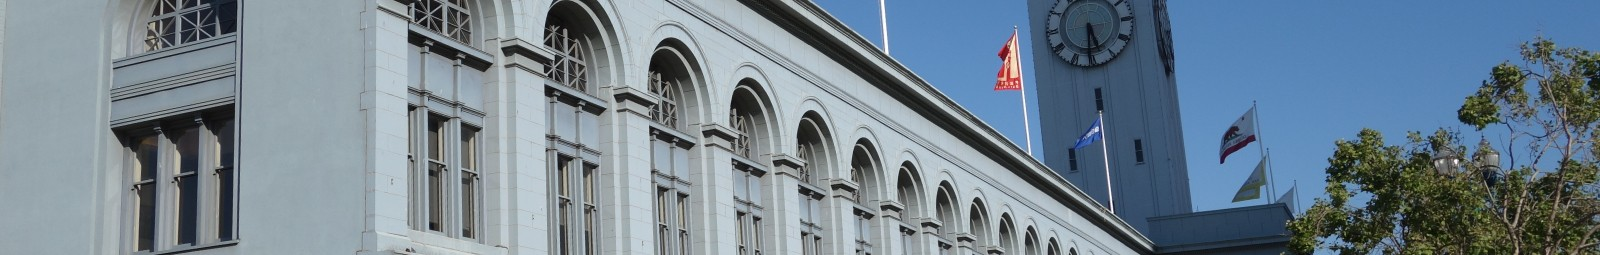 Ferry Building Facade